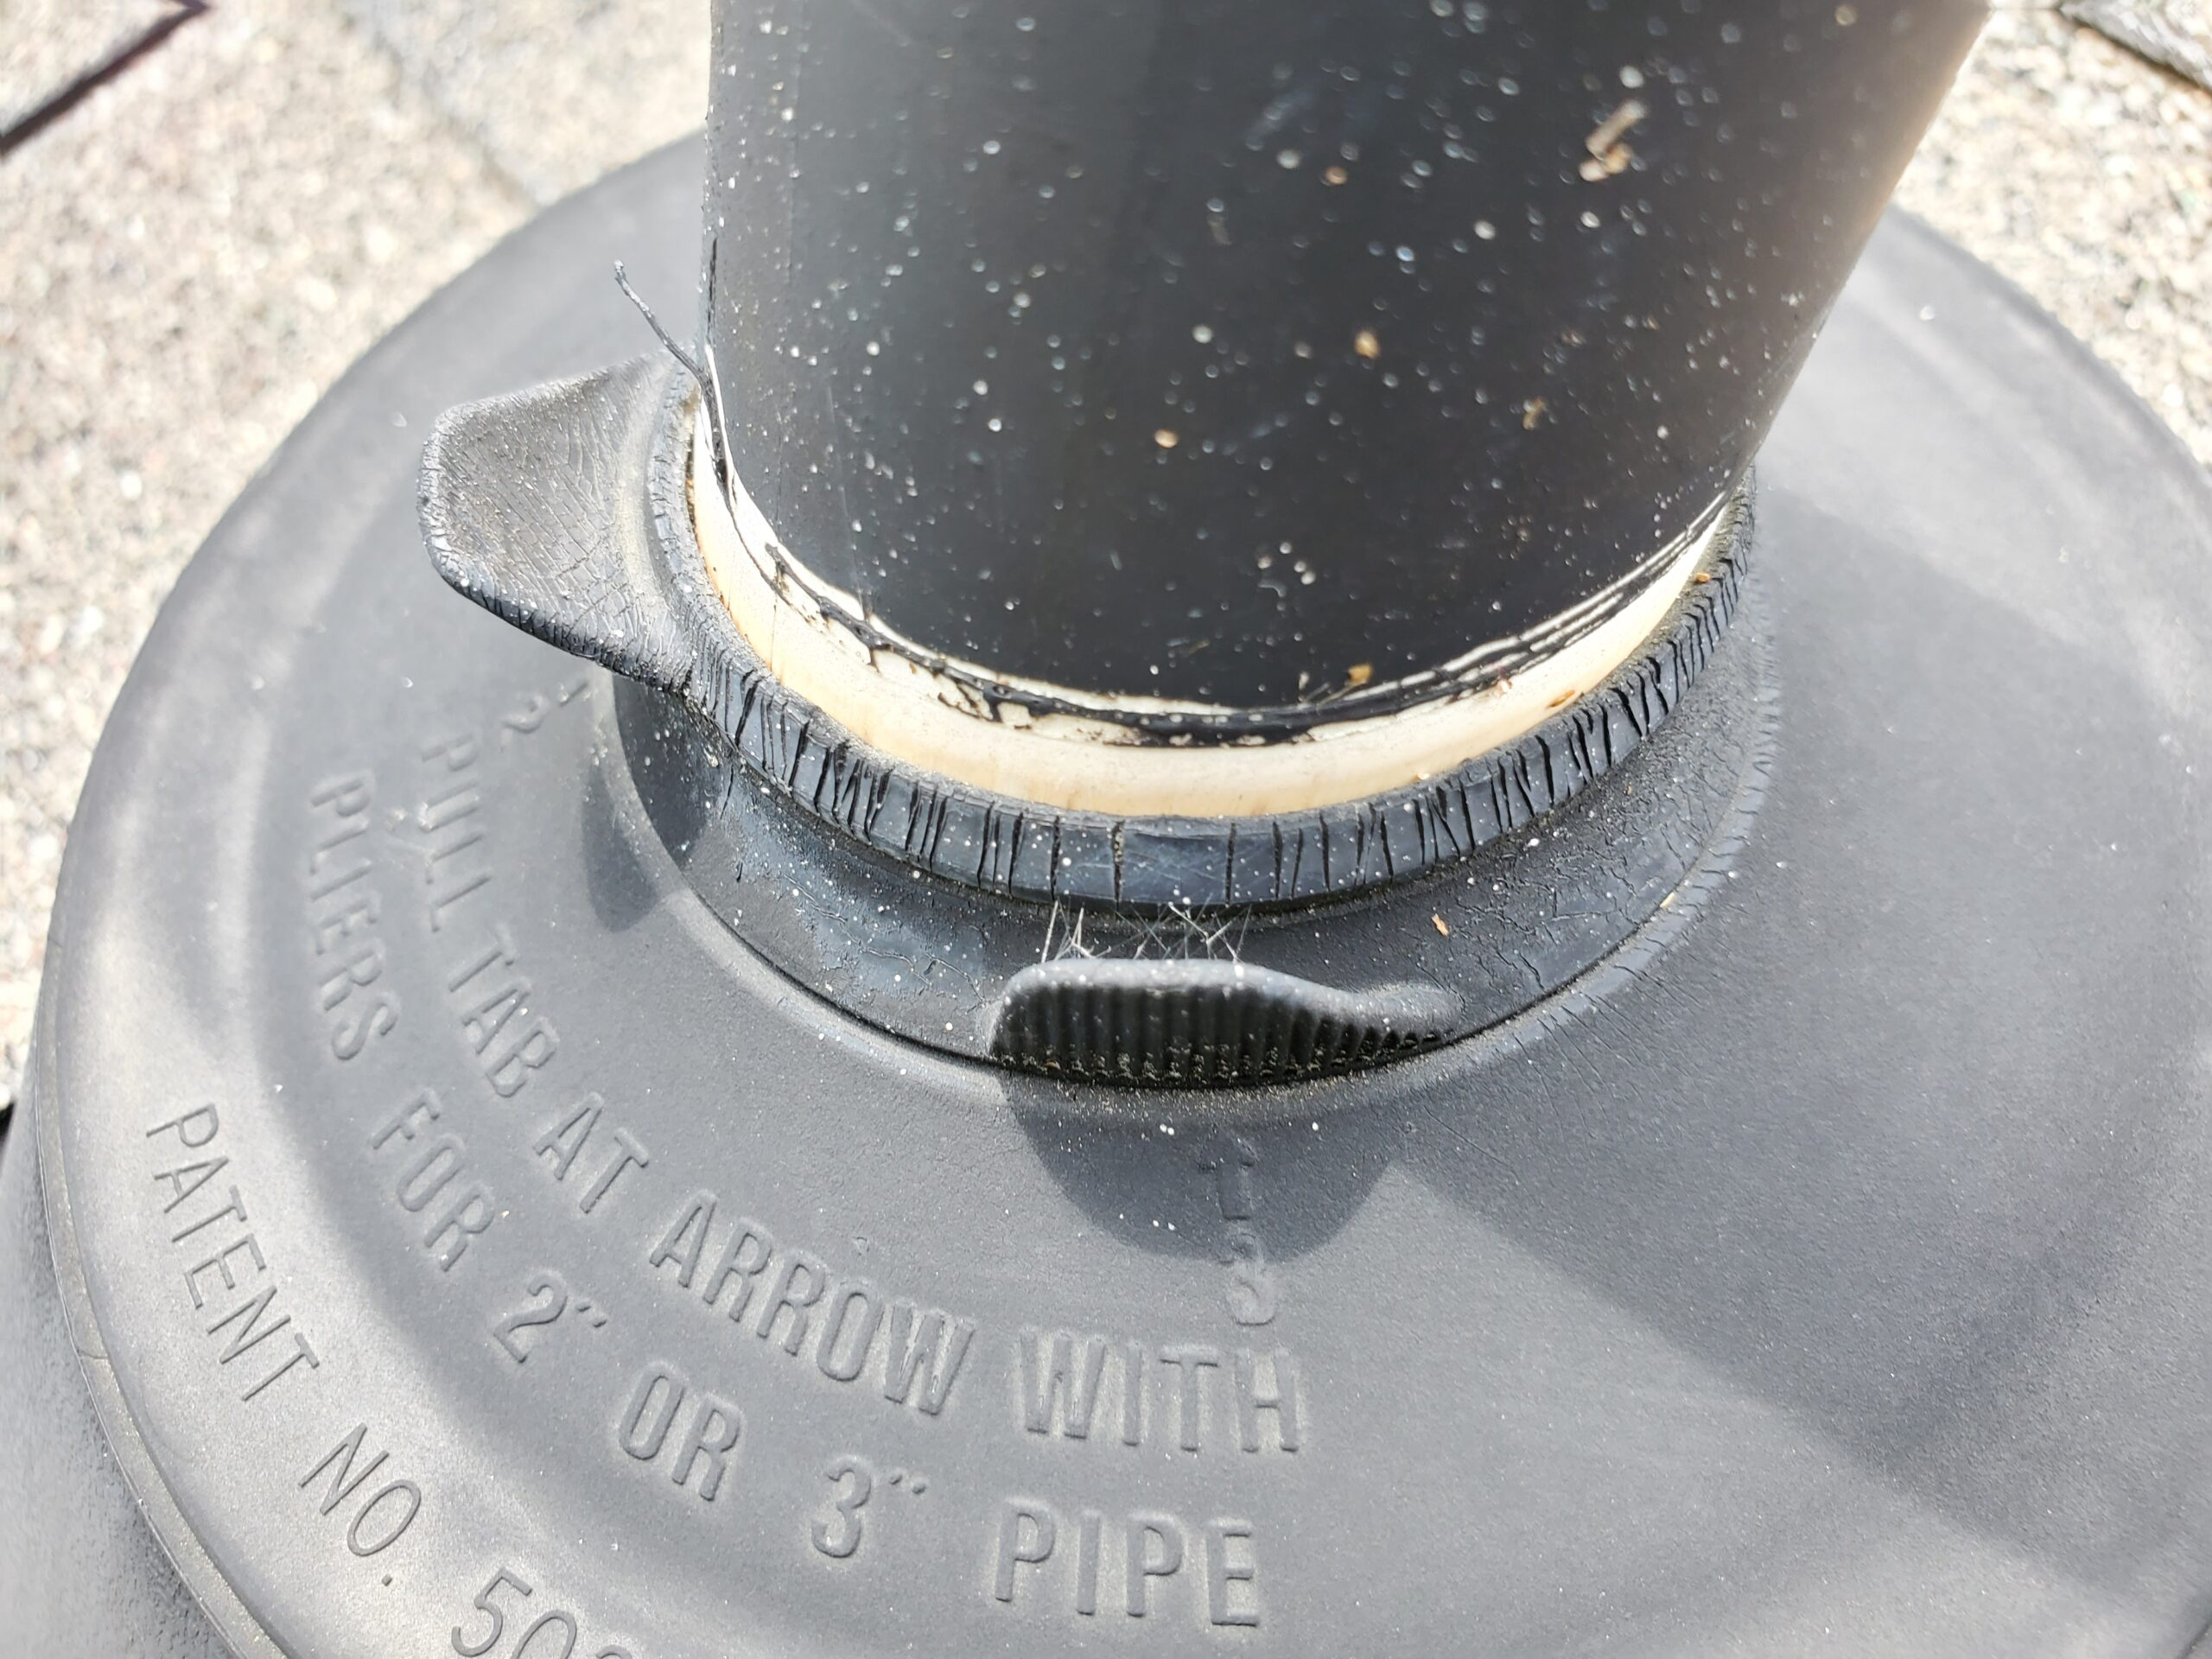 this is a picture of a plastic pipe boot on an old roof